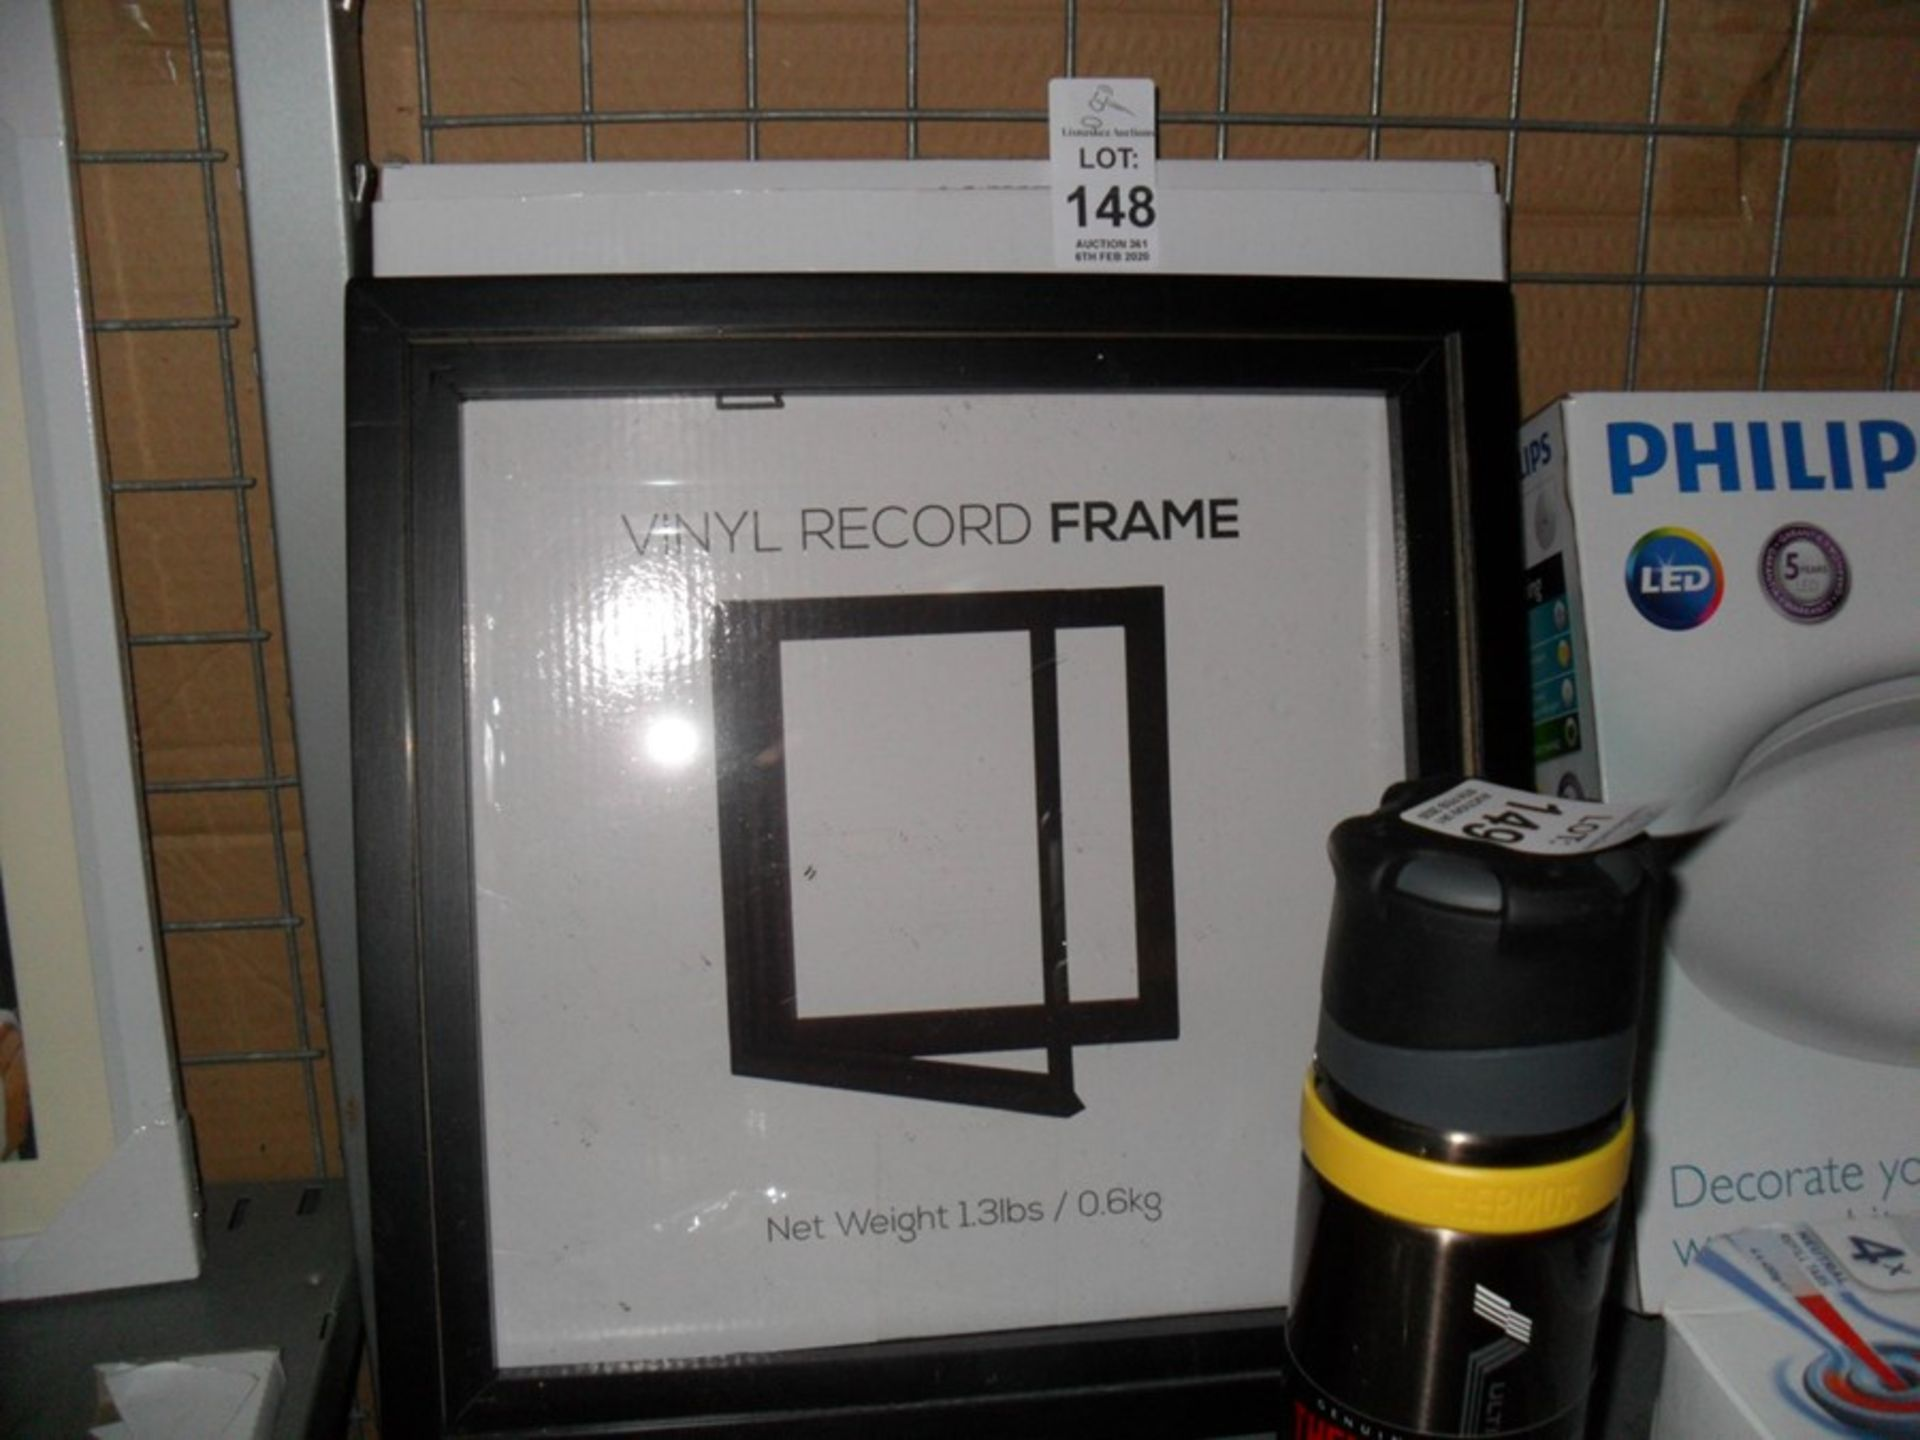 Lot 148 - KAIU VINYL RECORD FRAME (EX-SHOP DISPLAY)